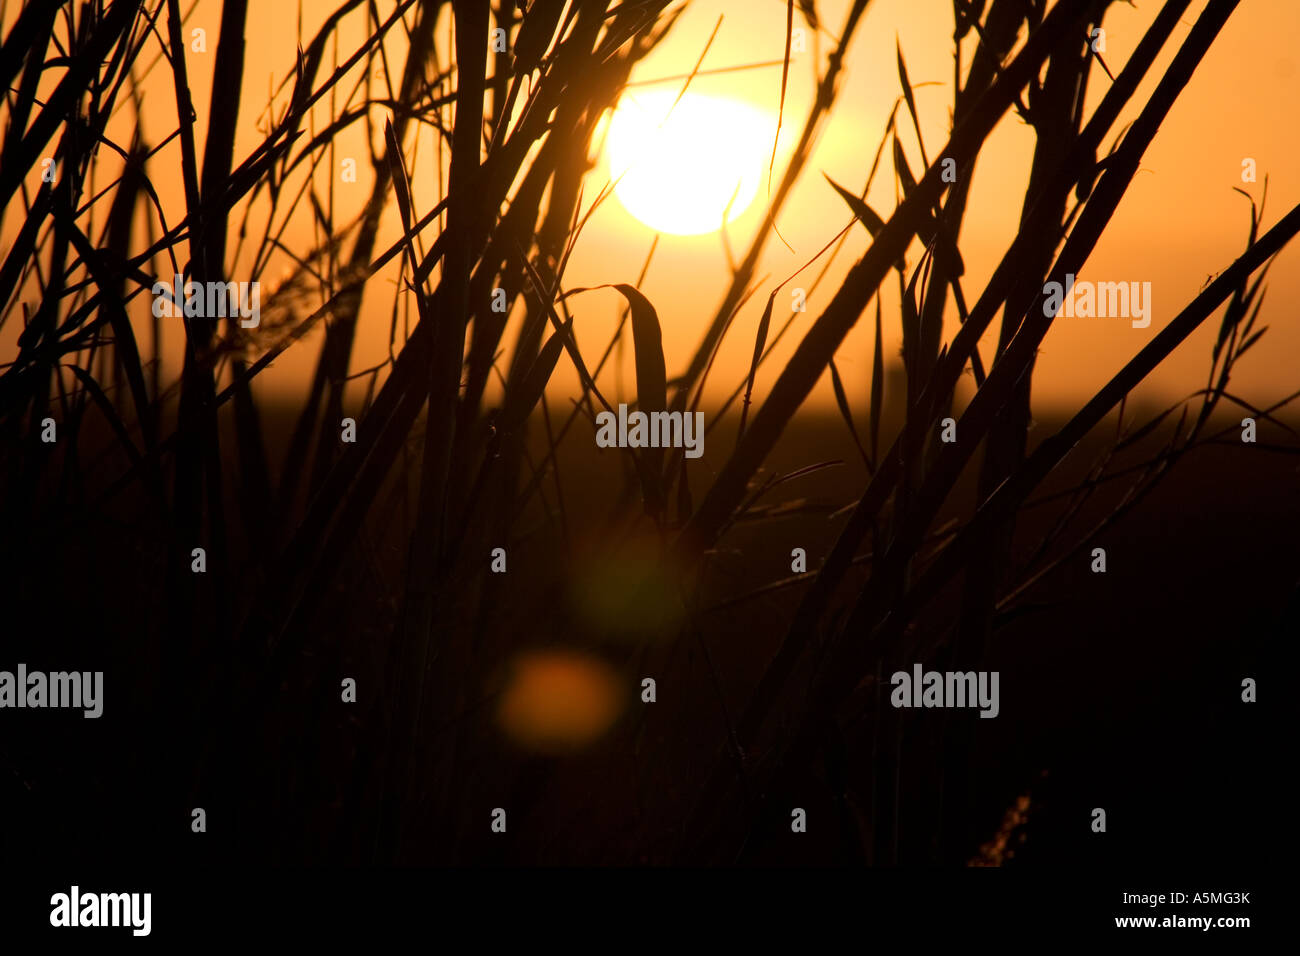 Golden sunset framed by reeds outside a Spanish City. - Stock Image